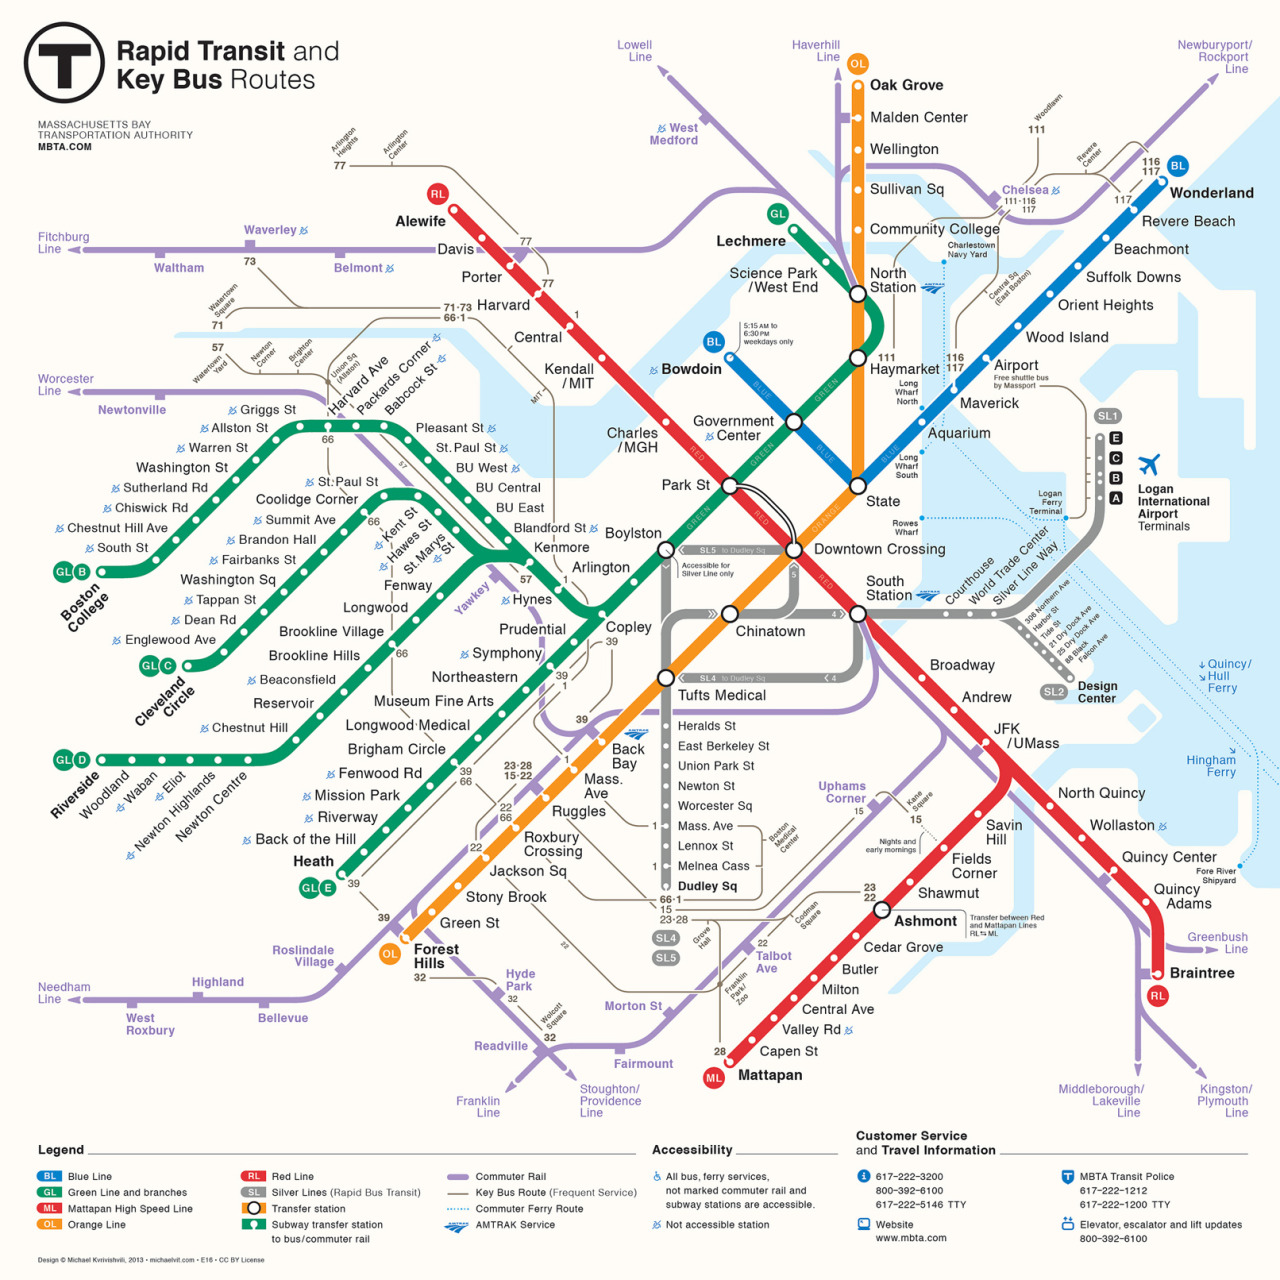 "Unofficial Map: MBTA Map Contest Entry by Michael Kvrivishvili Here's another entry for the MBTA's map contest, sent to me by Michael Kvrivishvili, a graphic and interactive designer from Moscow. Michael has chosen to show all of the services on his map that the MBTA does on their map — subway, BRT, commuter rail, key bus routes and ferries. He pulls it off pretty well, too, although the convoluted network of bus routes is always going to look a little busy. Like Kerim, Michael's map features a perfect diamond representing the downtown interchange stations, and he also manages to fit in all the Green Line stations.If it wasn't for the little flip in the Red Line to Braintree, he'd also have a perfectly straight diagonal line across the map! Despite these similarities, the two maps are really quite different. Much like the current Washington DC map, Michael has added badges to the end of each line that denotes that line's name —  ""OL"" for Orange Line, and so on — an excellent aid for color-blind users of the system. He also adds the full name of the line in very small text within each line, which seems redundant and is also far too small to be of any real use. For the most part, Michael's handling of the commuter rail lines is well done: they're obviously lower in the information hierarchy than the main subway lines, but still look attractive. Again, the ends of the commuter rail lines feature some lovely and unusual arrowheads — I love this sort of attention to detail. The one place the map is not as clear as it could be is at Readville station. The Fairmount Line terminates at this station, while trains on the Franklin Line stop, but trains on the Stoughton/Providence Line pass through without stopping. On Michael's map. the Franklin Line looks like a continuation of the Fairmount Line (which isn't named on the map), and there's no visual indication that Stoughton/Providence trains don't stop here. There's more usability problems with the Silver Line at Logan Airport. Michael shows all the stops, but he doesn't show how the route loops around. From the information shown on the map, a reader might expect that once the bus reaches the end of the line at Terminal E, it reverses back along the line, stopping at the other terminals again along the way. A similar problem is evident with the end of the SL2 line at Design Center (also a loop in real life). Interestingly, Michael has chosen to show non-accessible stations on the map, rather than accessible ones. This actually works quite well at cleaning up the central part of the map, where there are more accessible stations than non-accessible ones. A few other thoughts: the legend at the bottom of the map is beautifully laid out; the subway to bus/commuter rail symbol is subtle but effective; and the bus routes are generally pretty well done. Also, the Silver Line makes a big capital ""B"" in the middle of the map! Our rating: Really quite good. The few shortcomings are probably due to Michael's unfamiliarity with the system and look like they could be easily fixed. Three-and-a-half stars.  (Source: Email from Michael, also on Flickr)"